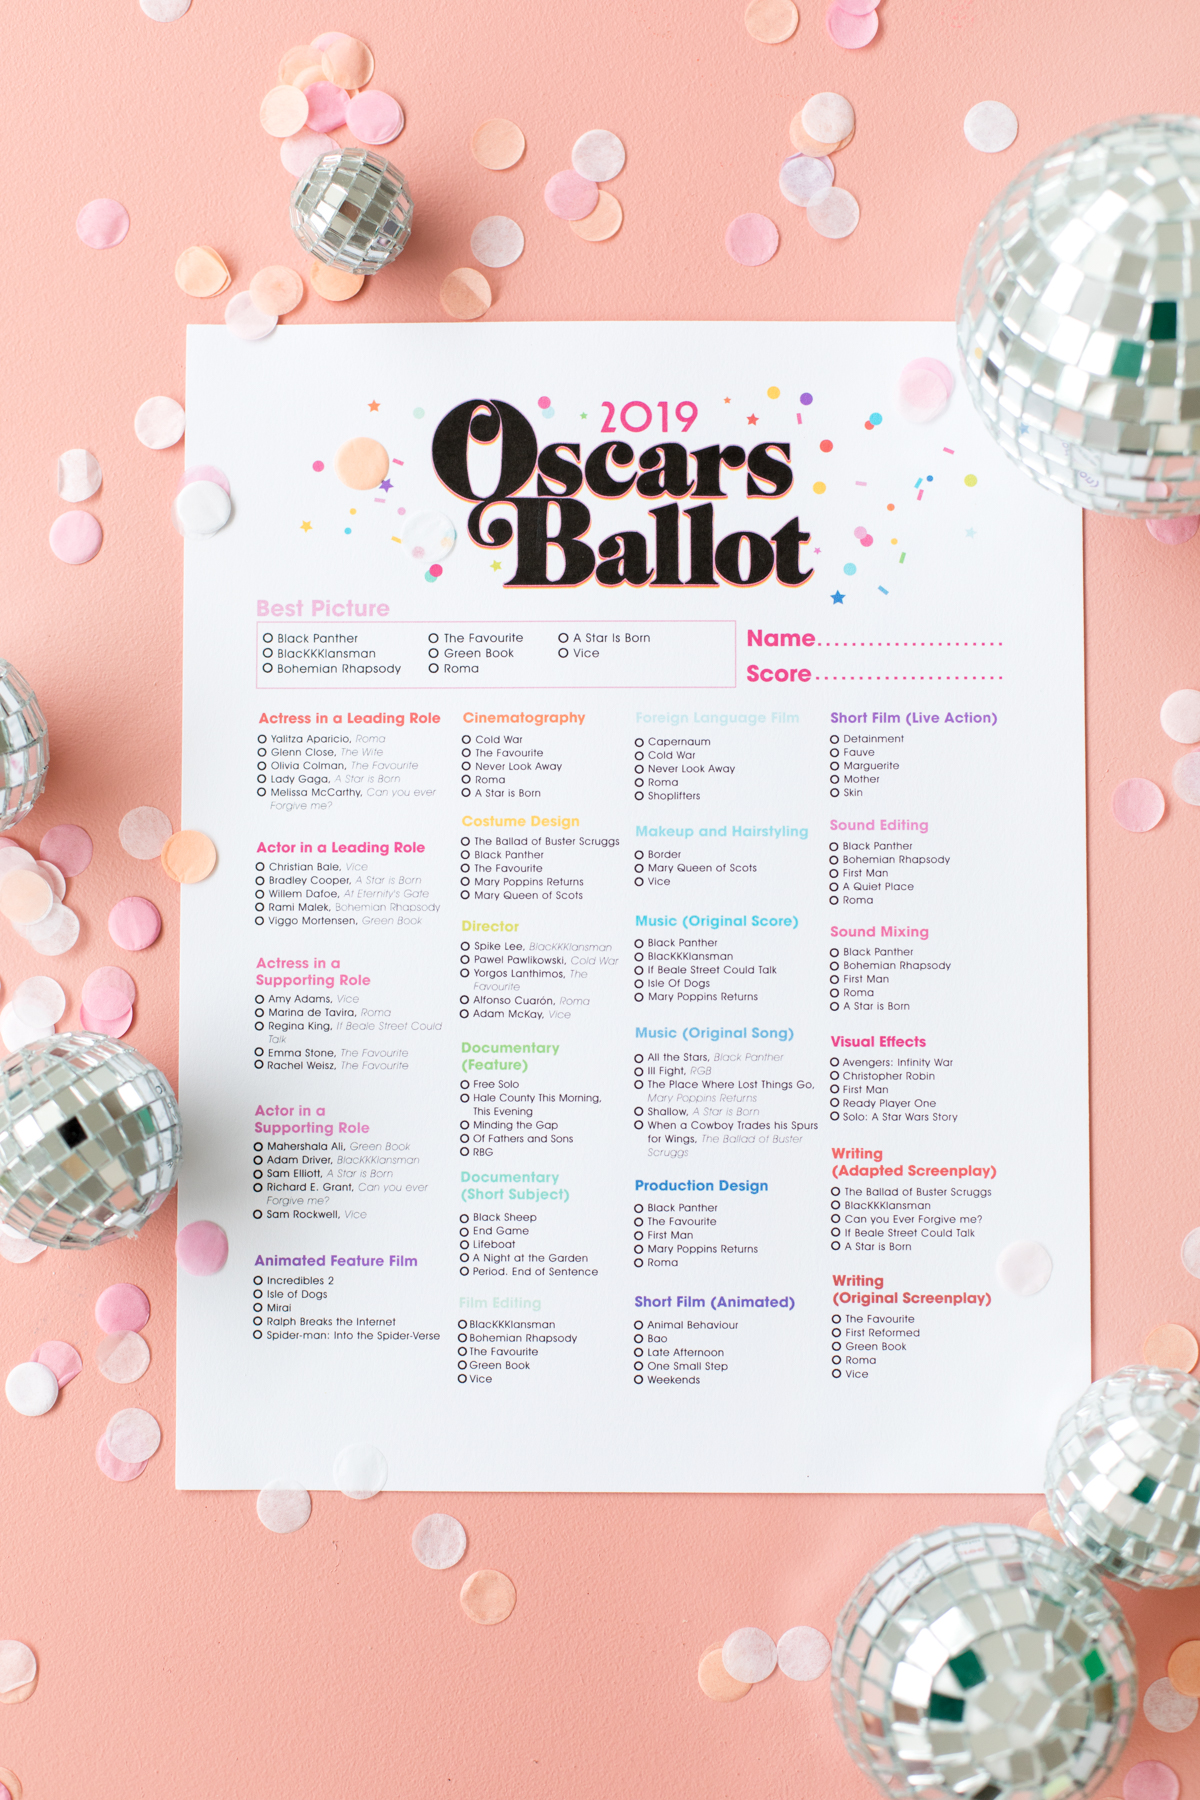 photograph regarding Oscar Ballots Printable identified as Absolutely free Printable 2019 Oscar Ballot - Studio Do-it-yourself